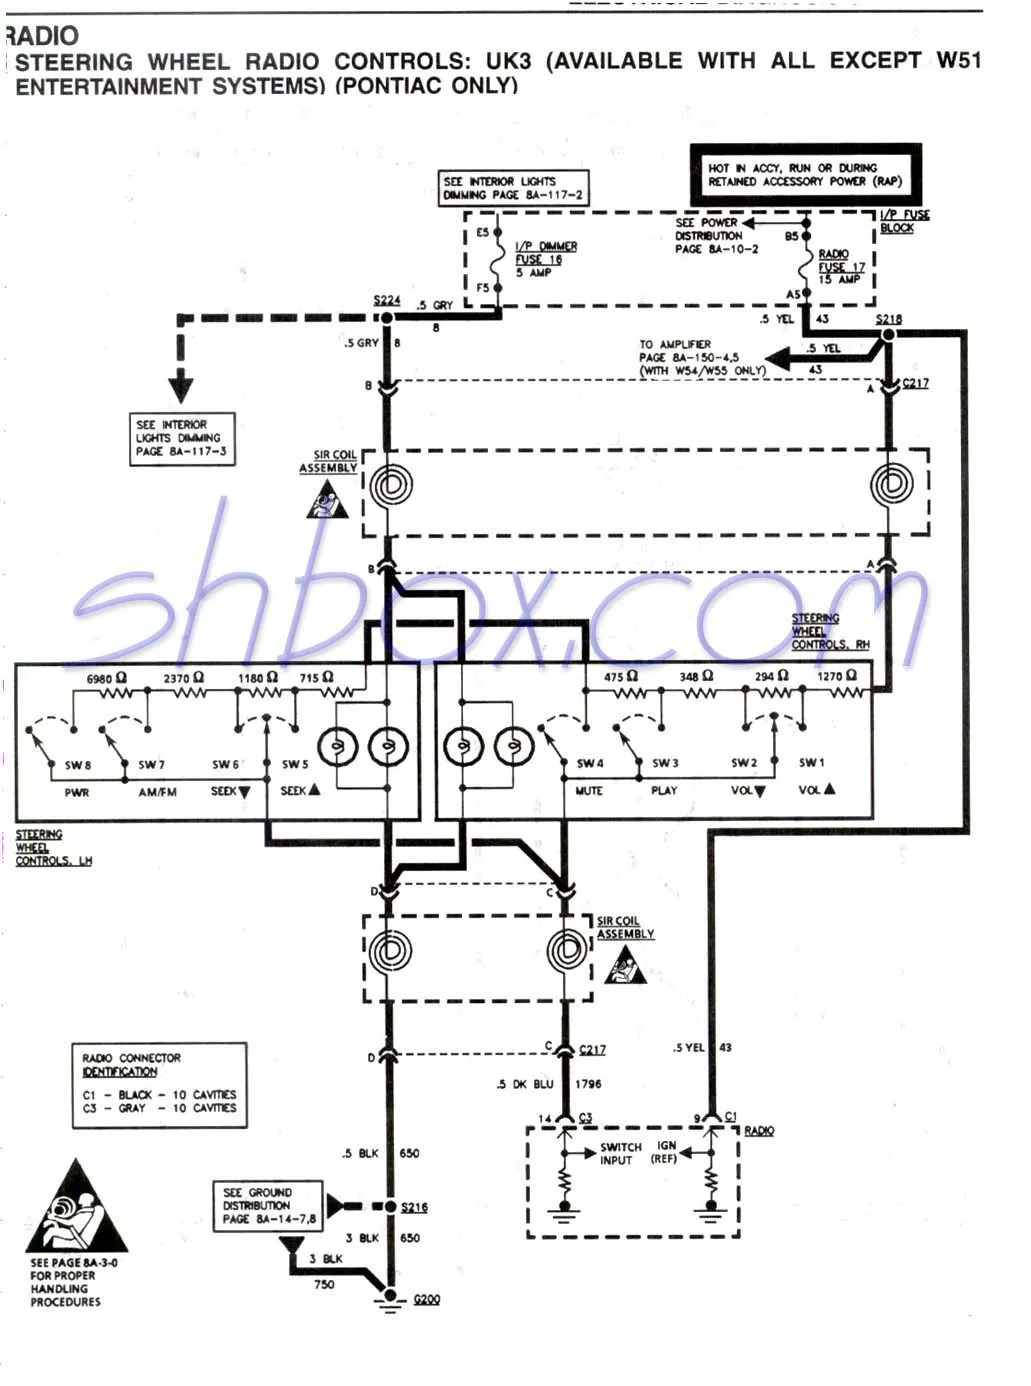 hight resolution of 1996 chevy k3500 7 4 liter wiring steering column wiring diagram 1996 chevy k3500 7 4 liter wiring steering column